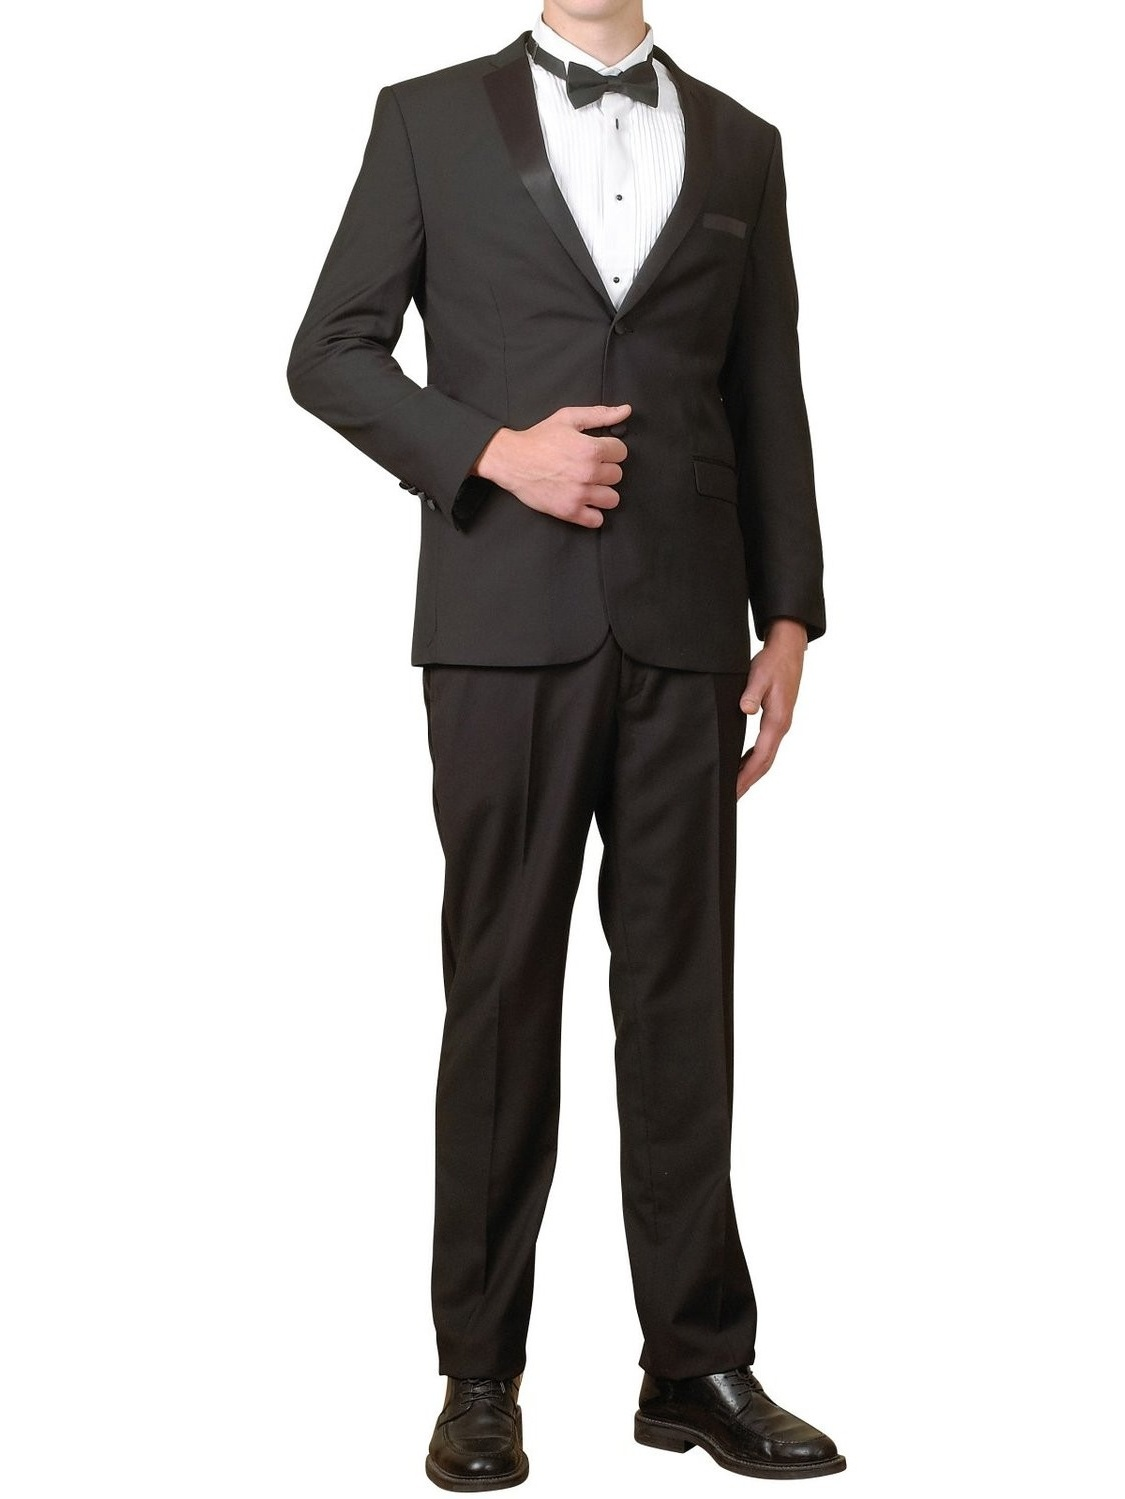 Men's Tuxedo Package | 5 Piece Complete Set | Suit Jacket, Tux...